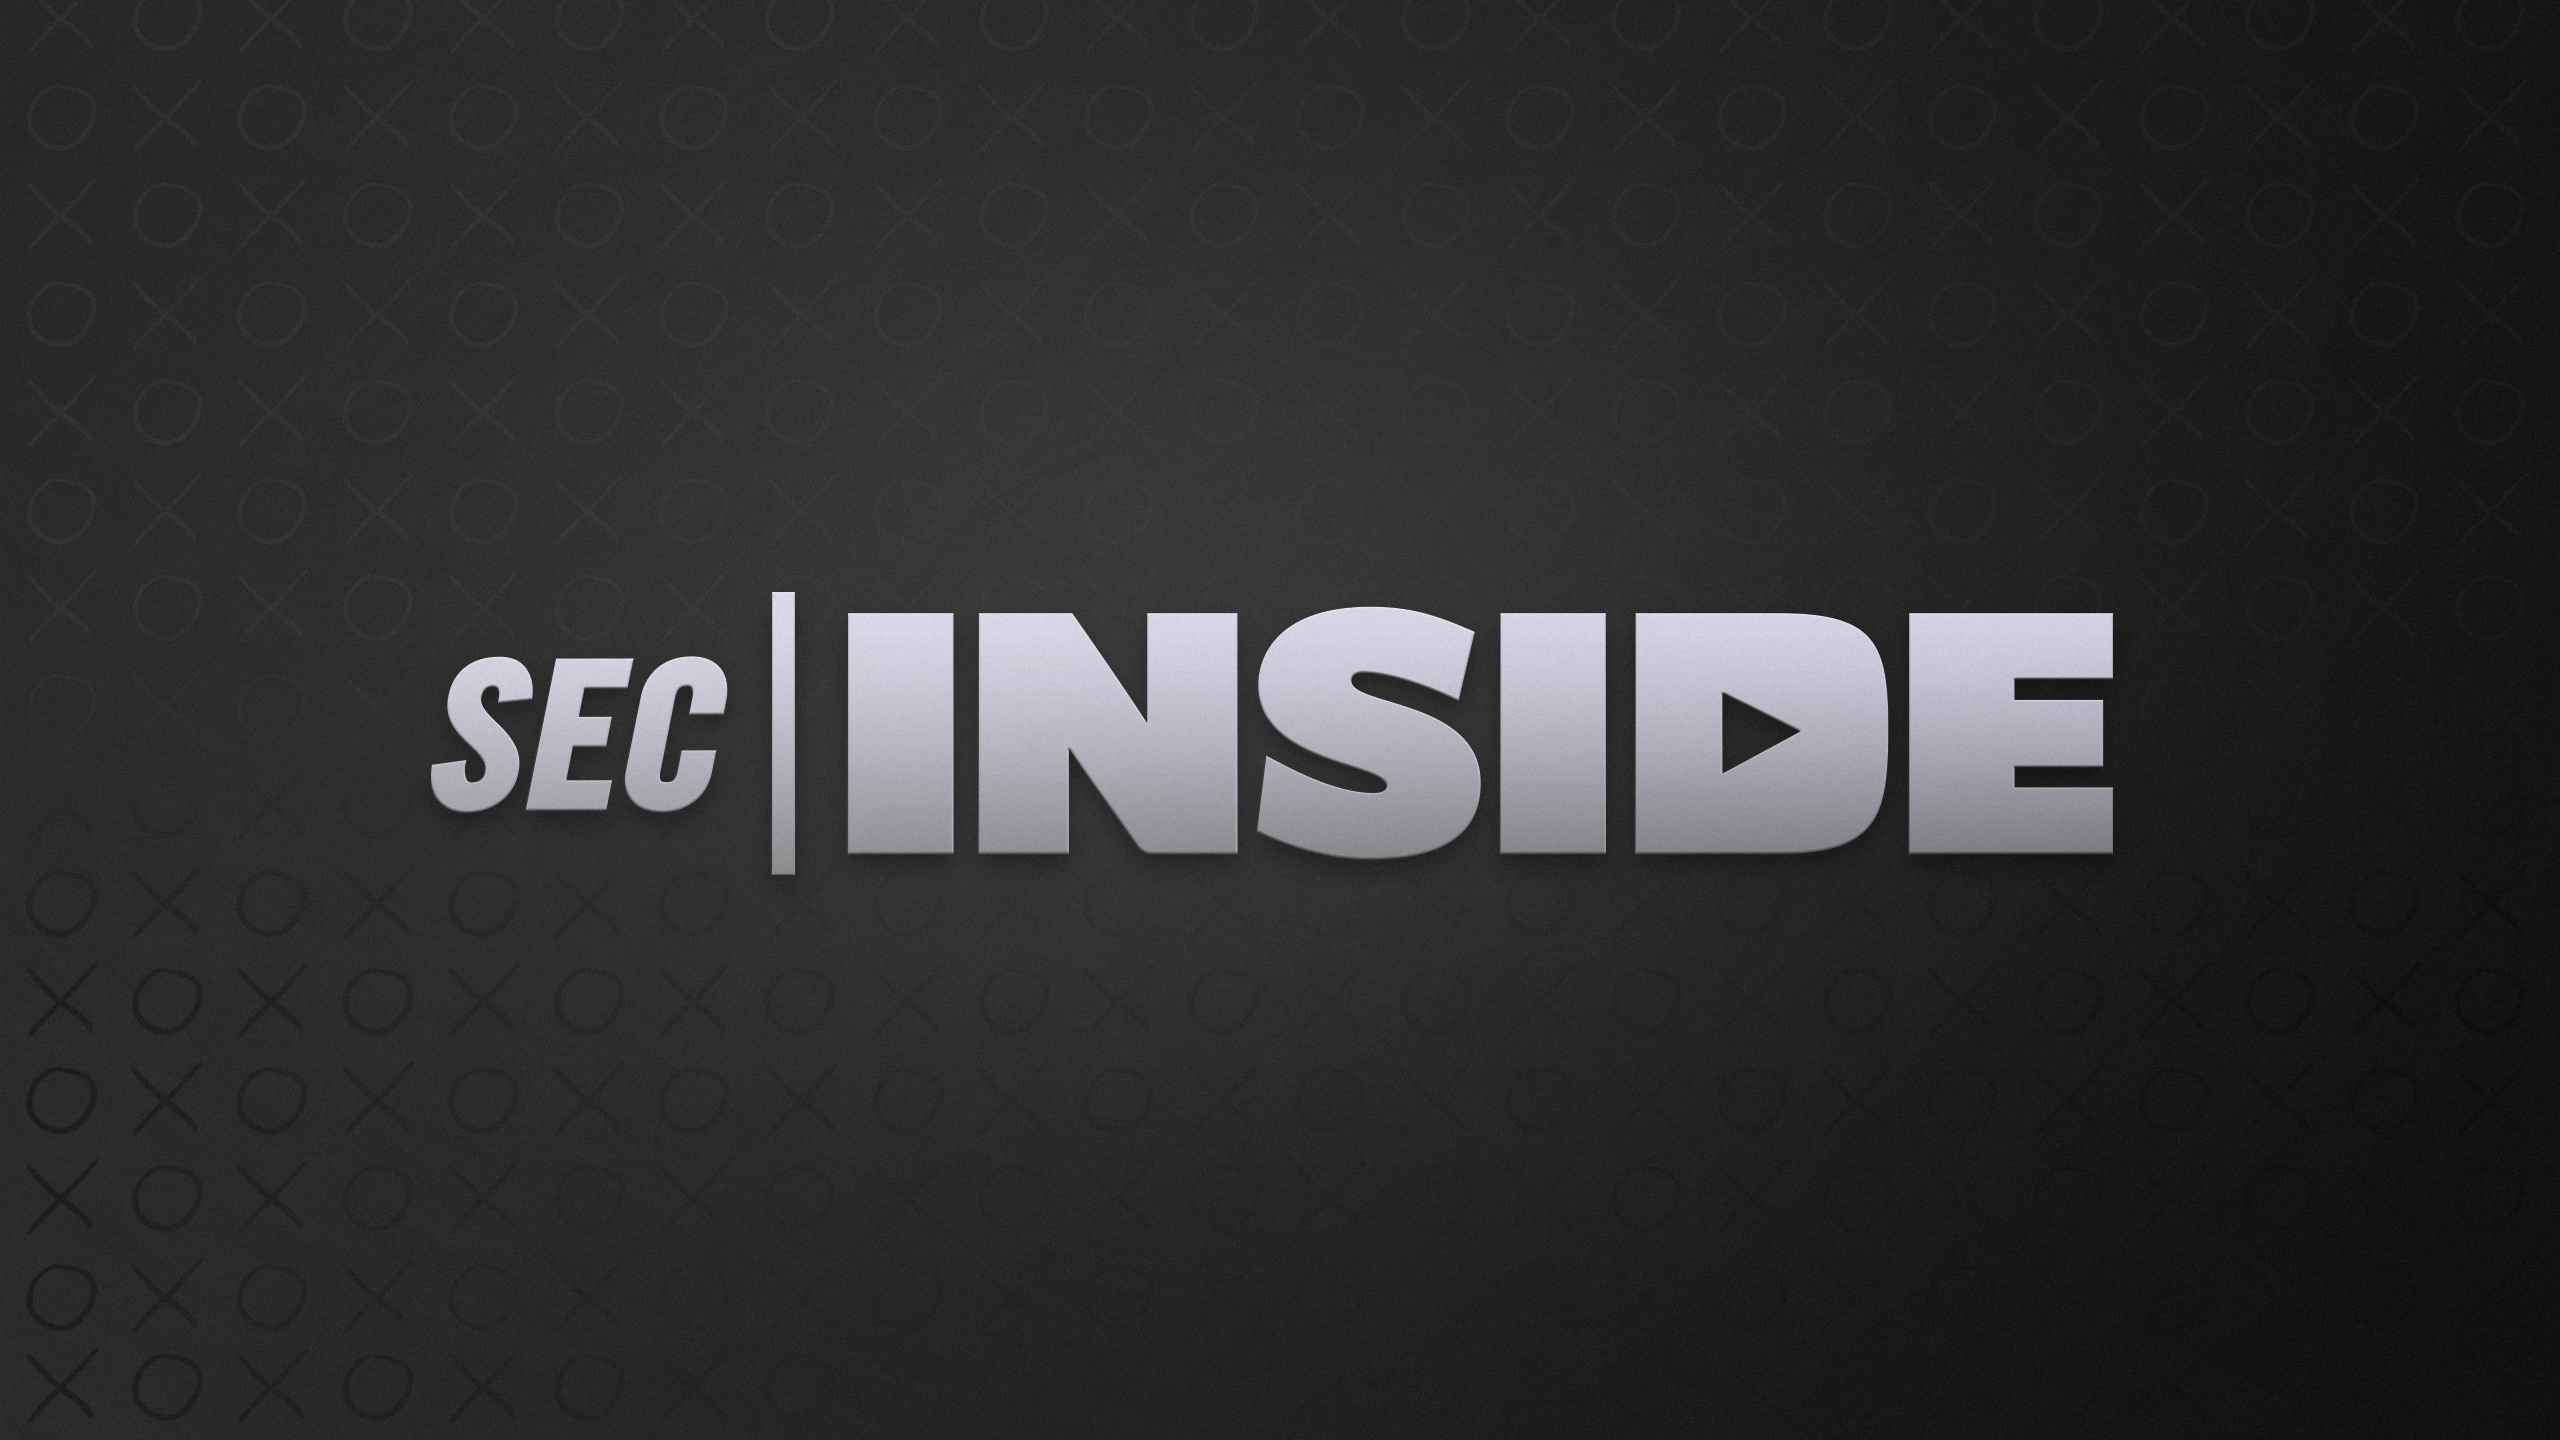 SEC Inside: Men's Basketball Tournament